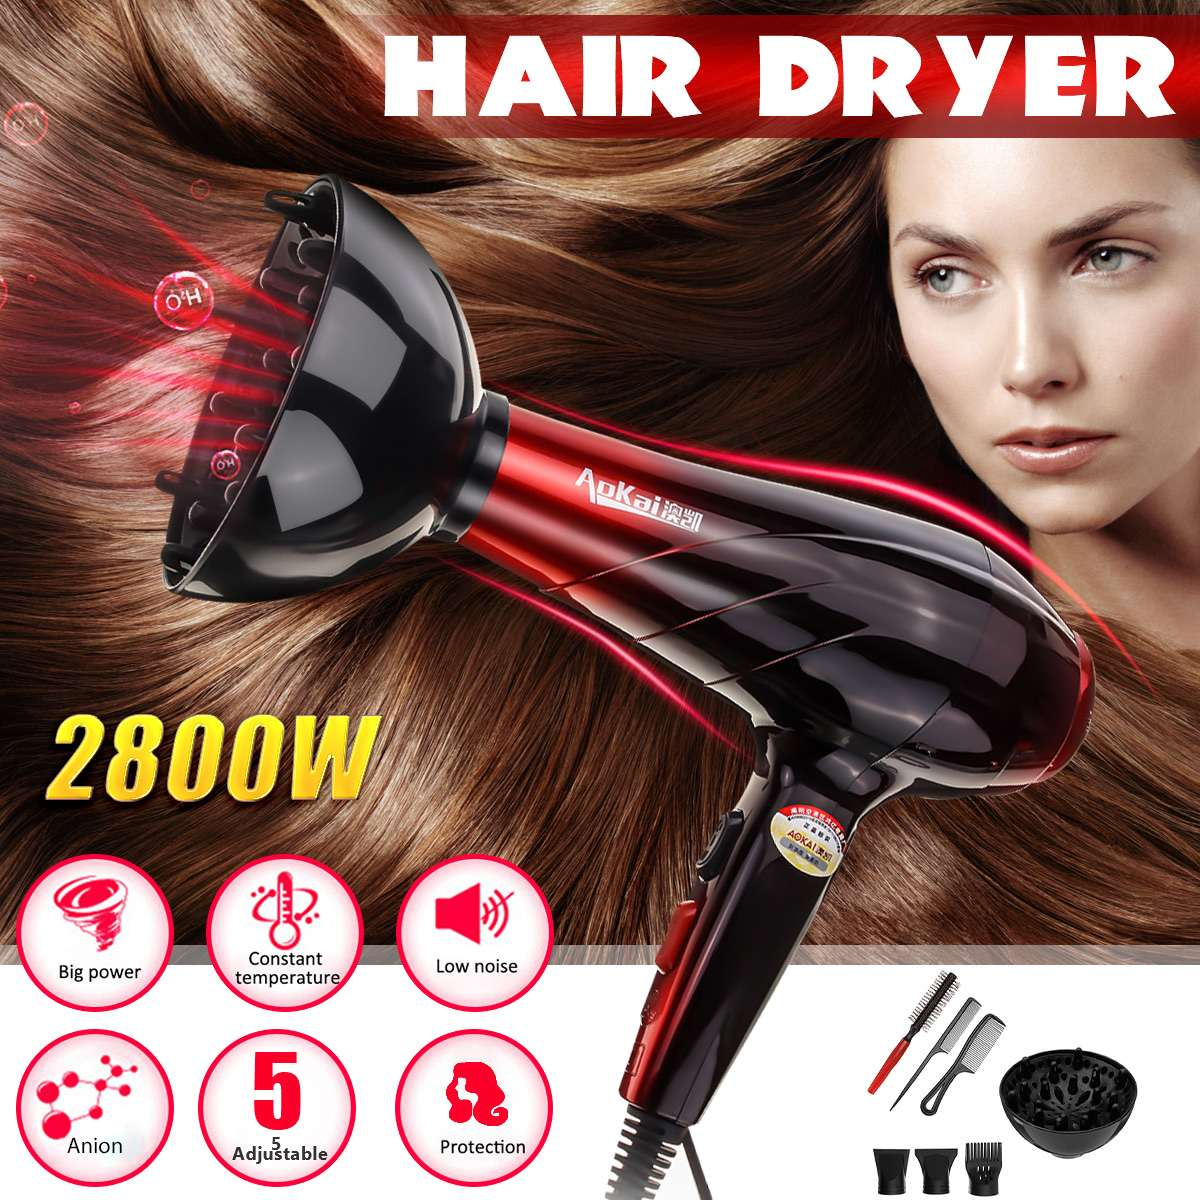 2800W 220V Professional Electric Hair Dryer Salon Hairdressing Blow Diffuser Tool Kit 2 Heat Speed 3 Tempreture Setting 24x28cm2800W 220V Professional Electric Hair Dryer Salon Hairdressing Blow Diffuser Tool Kit 2 Heat Speed 3 Tempreture Setting 24x28cm